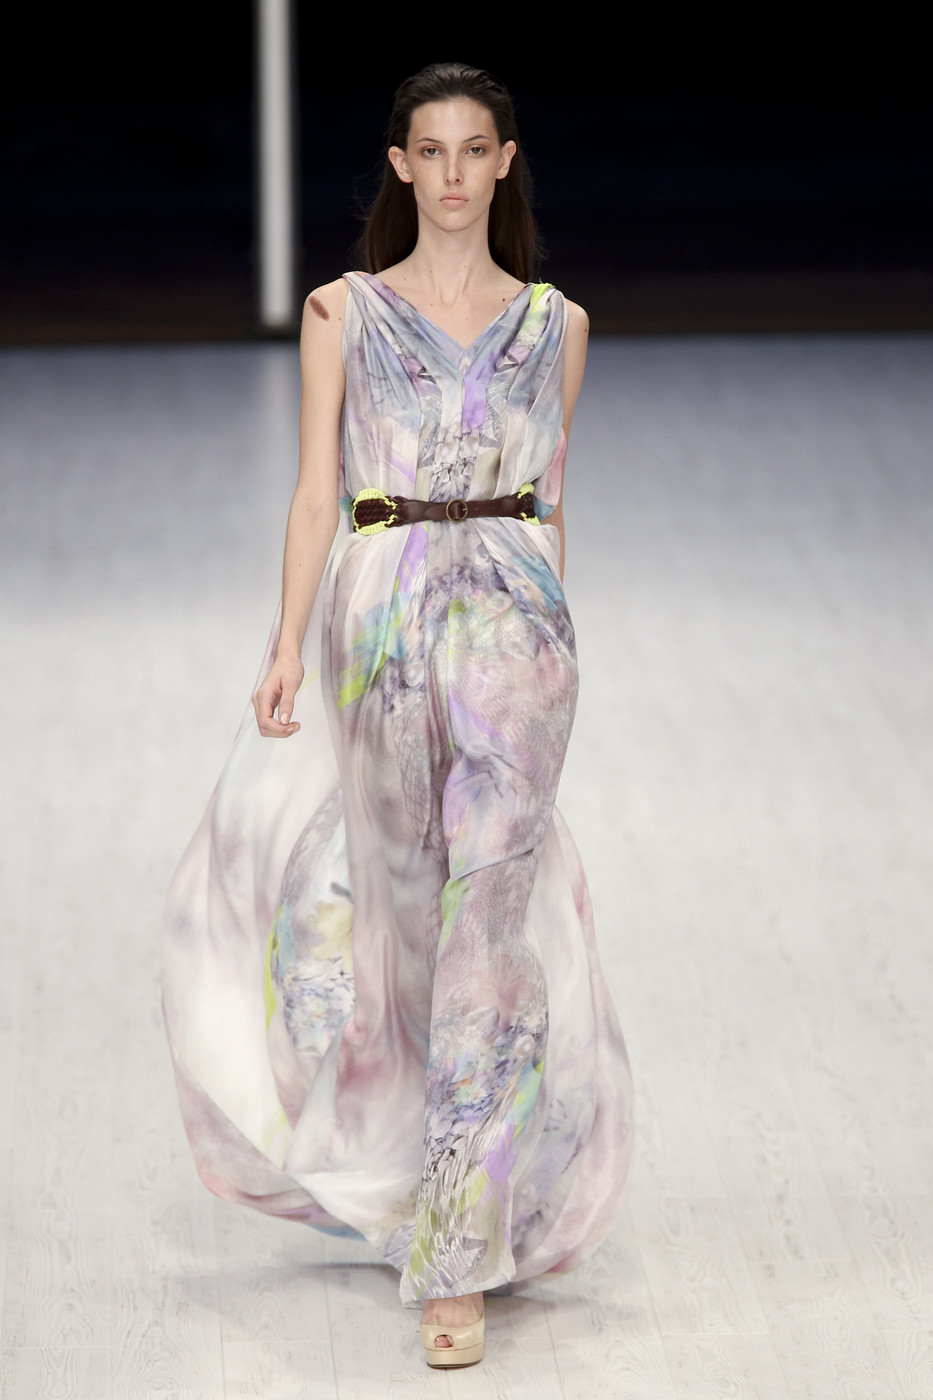 via fashioned by love | Matthew Williamson Spring/Summer 2011 | floral trend